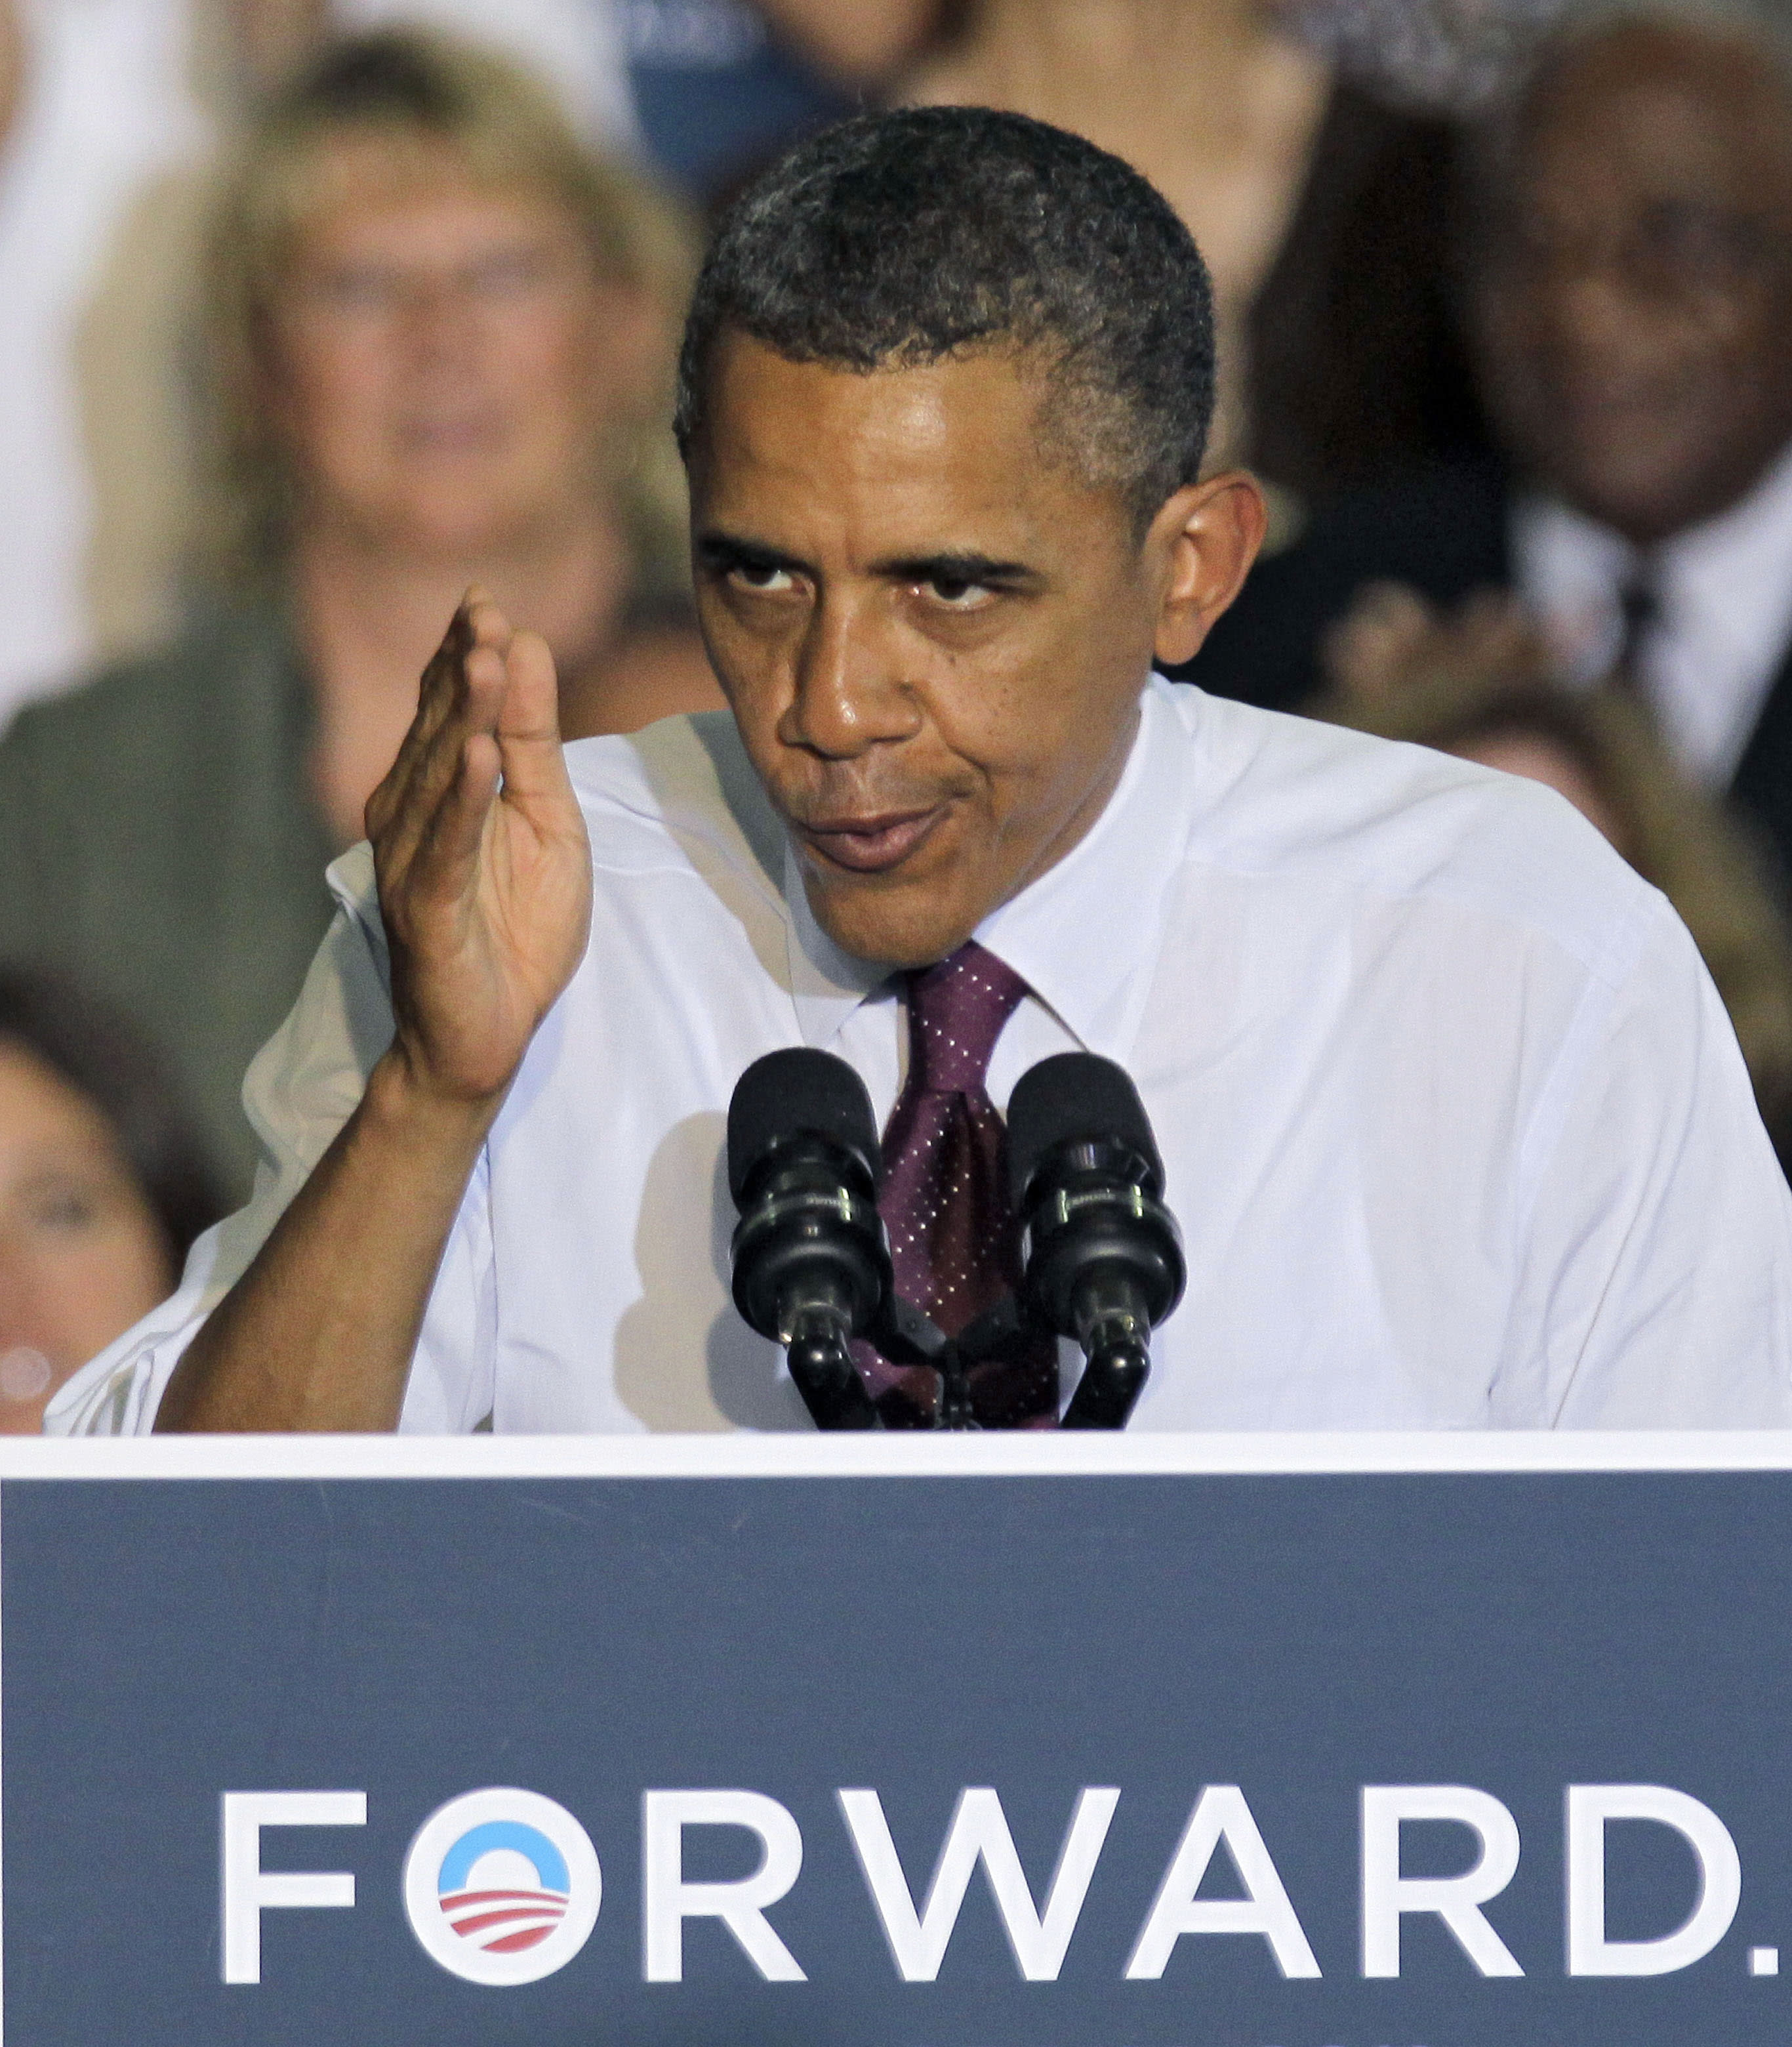 President Obama gestures during a grassroots campaign speech Friday, June 22, 2012, at Hillsborough Community College in Tampa, Fla. (AP Photo/Chris O'Meara)